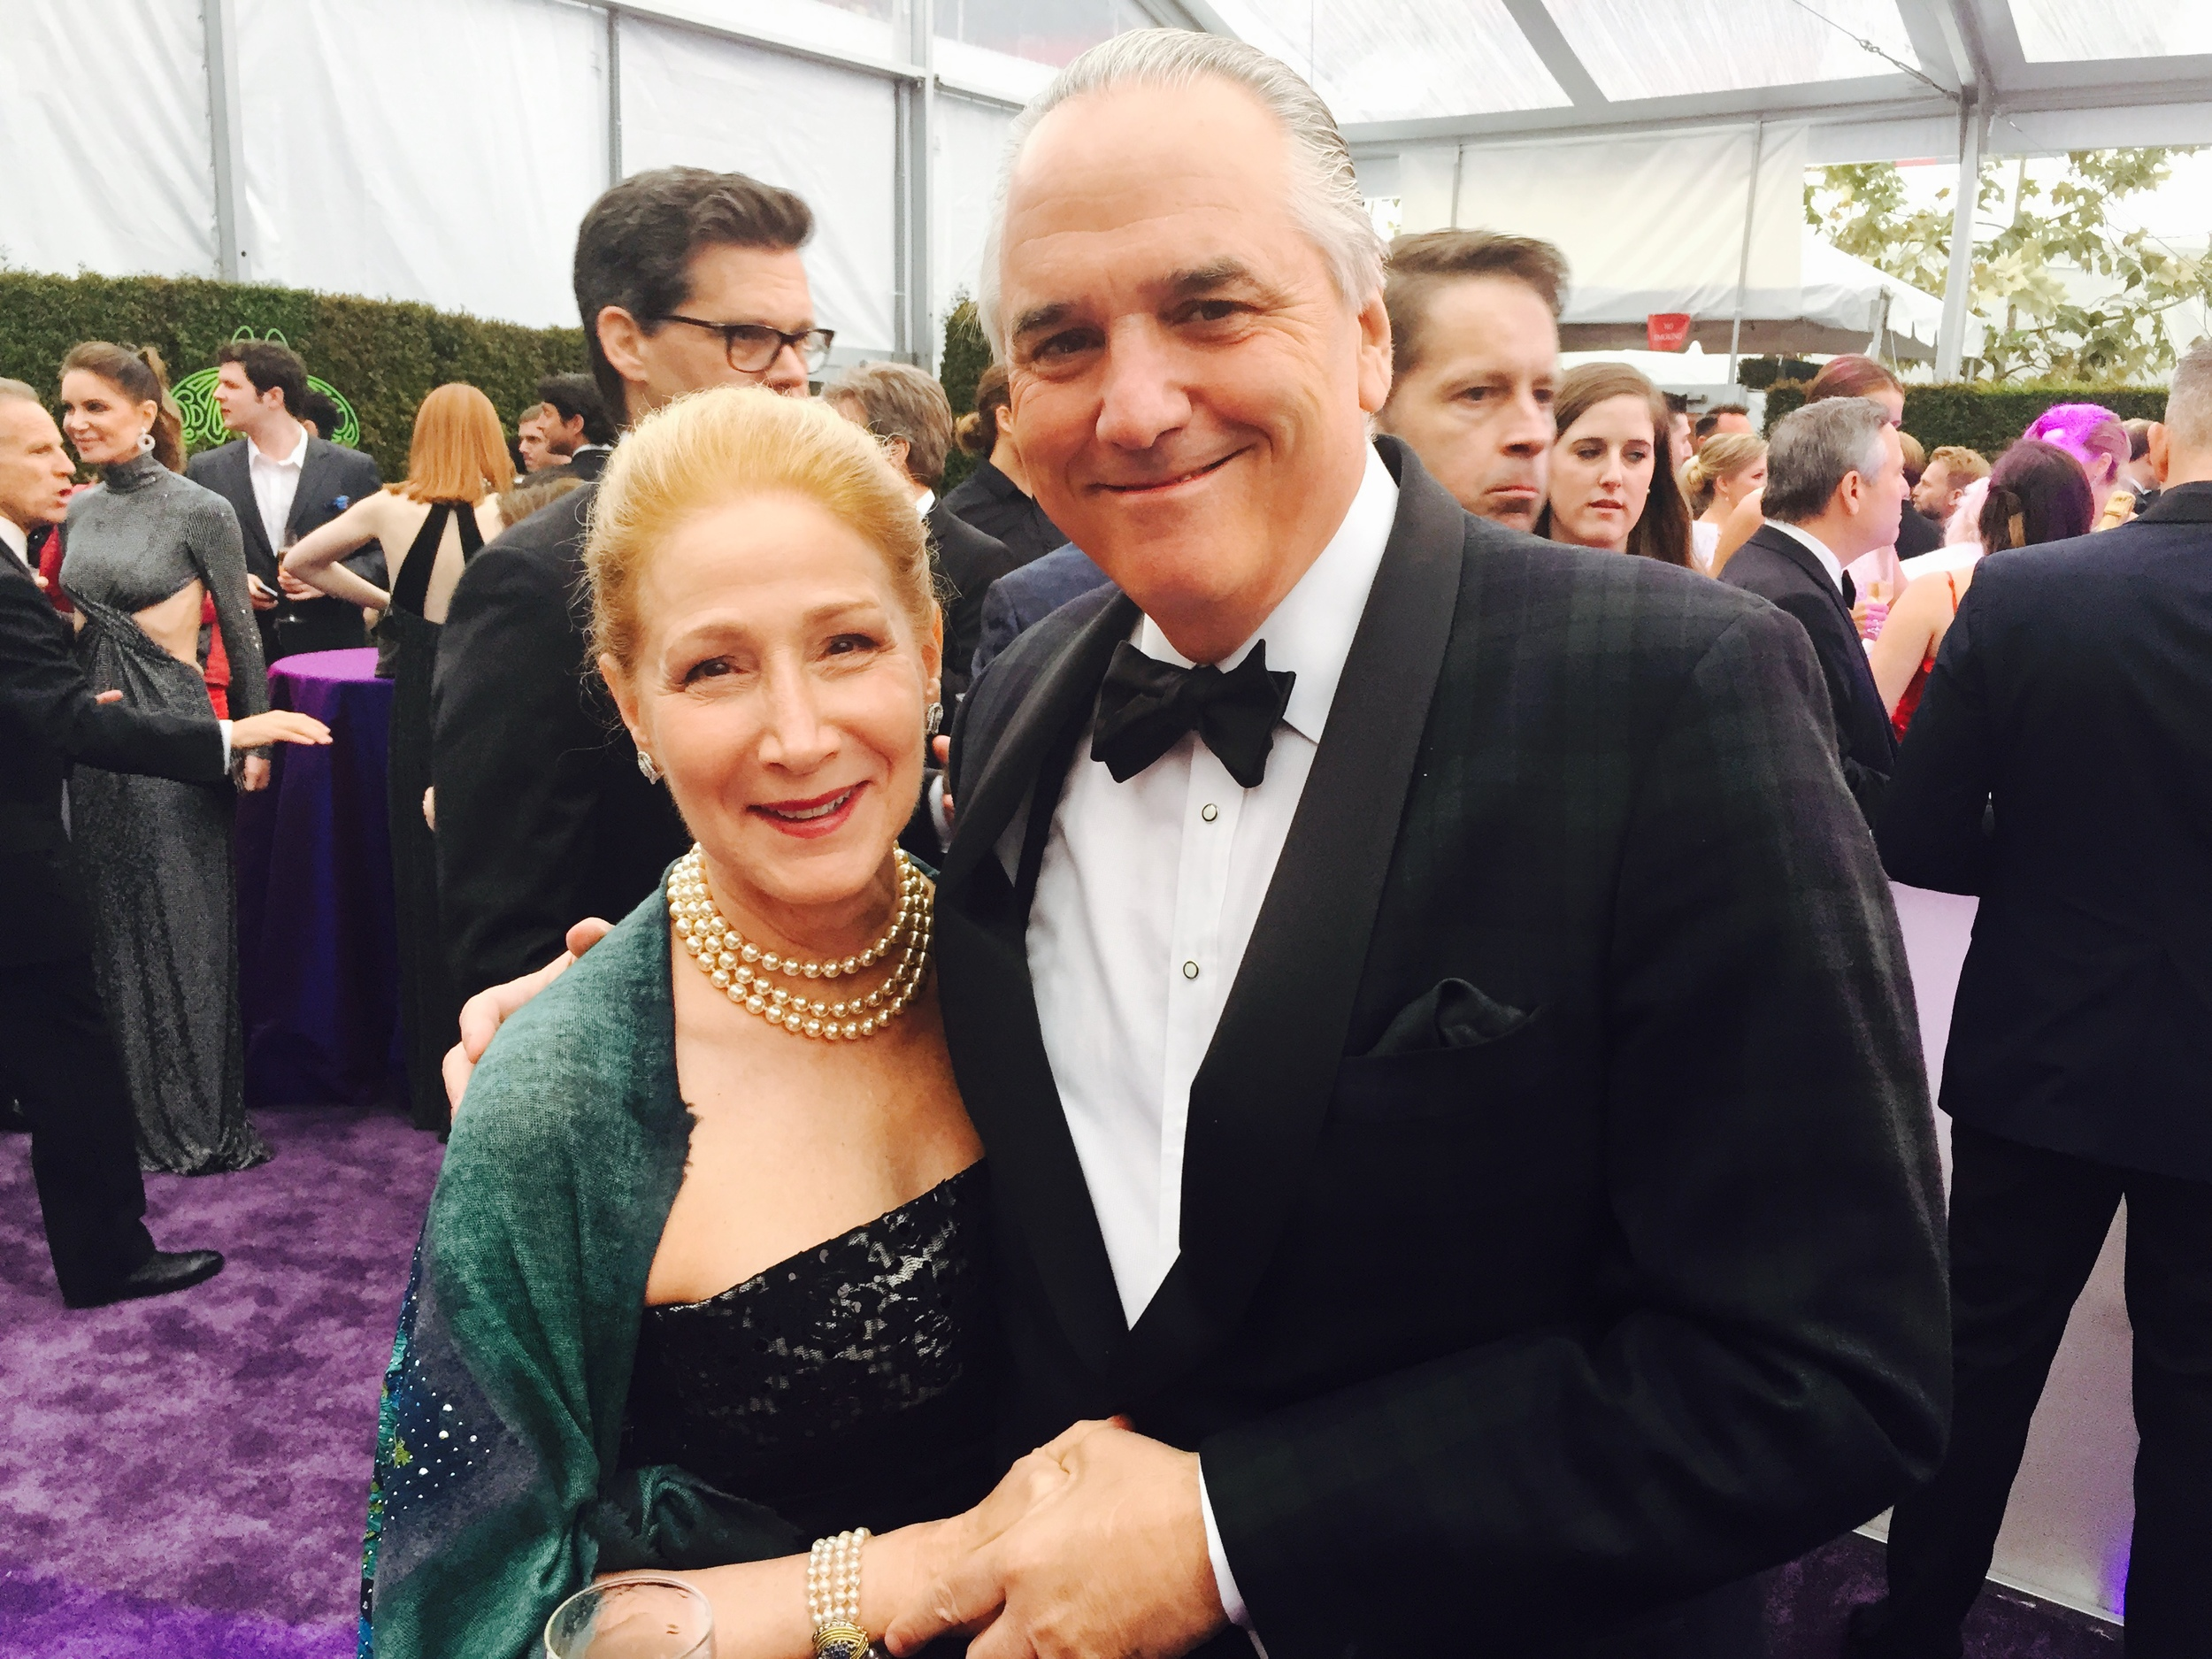 Elizabeth and Vin Roberti at Elton John's Viewing Party. (Photo: Amy Roberti)